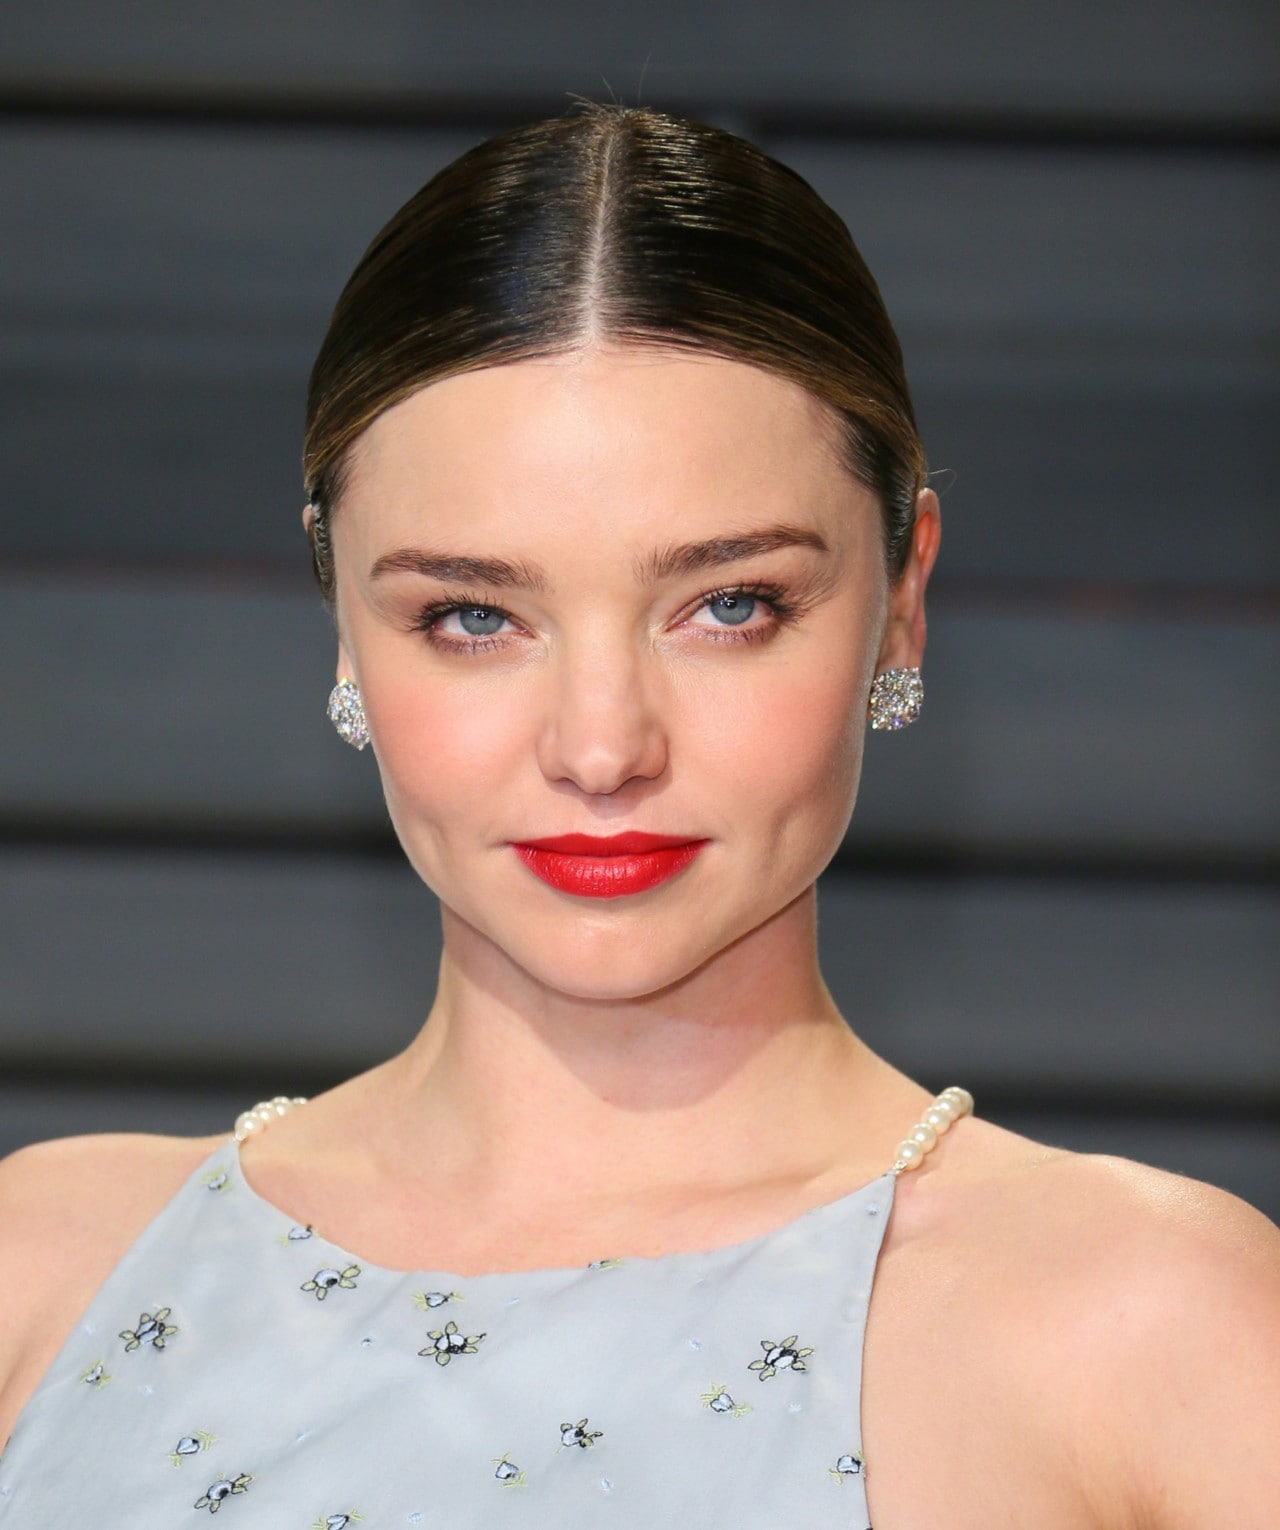 Miranda Kerr's simple pimple solution